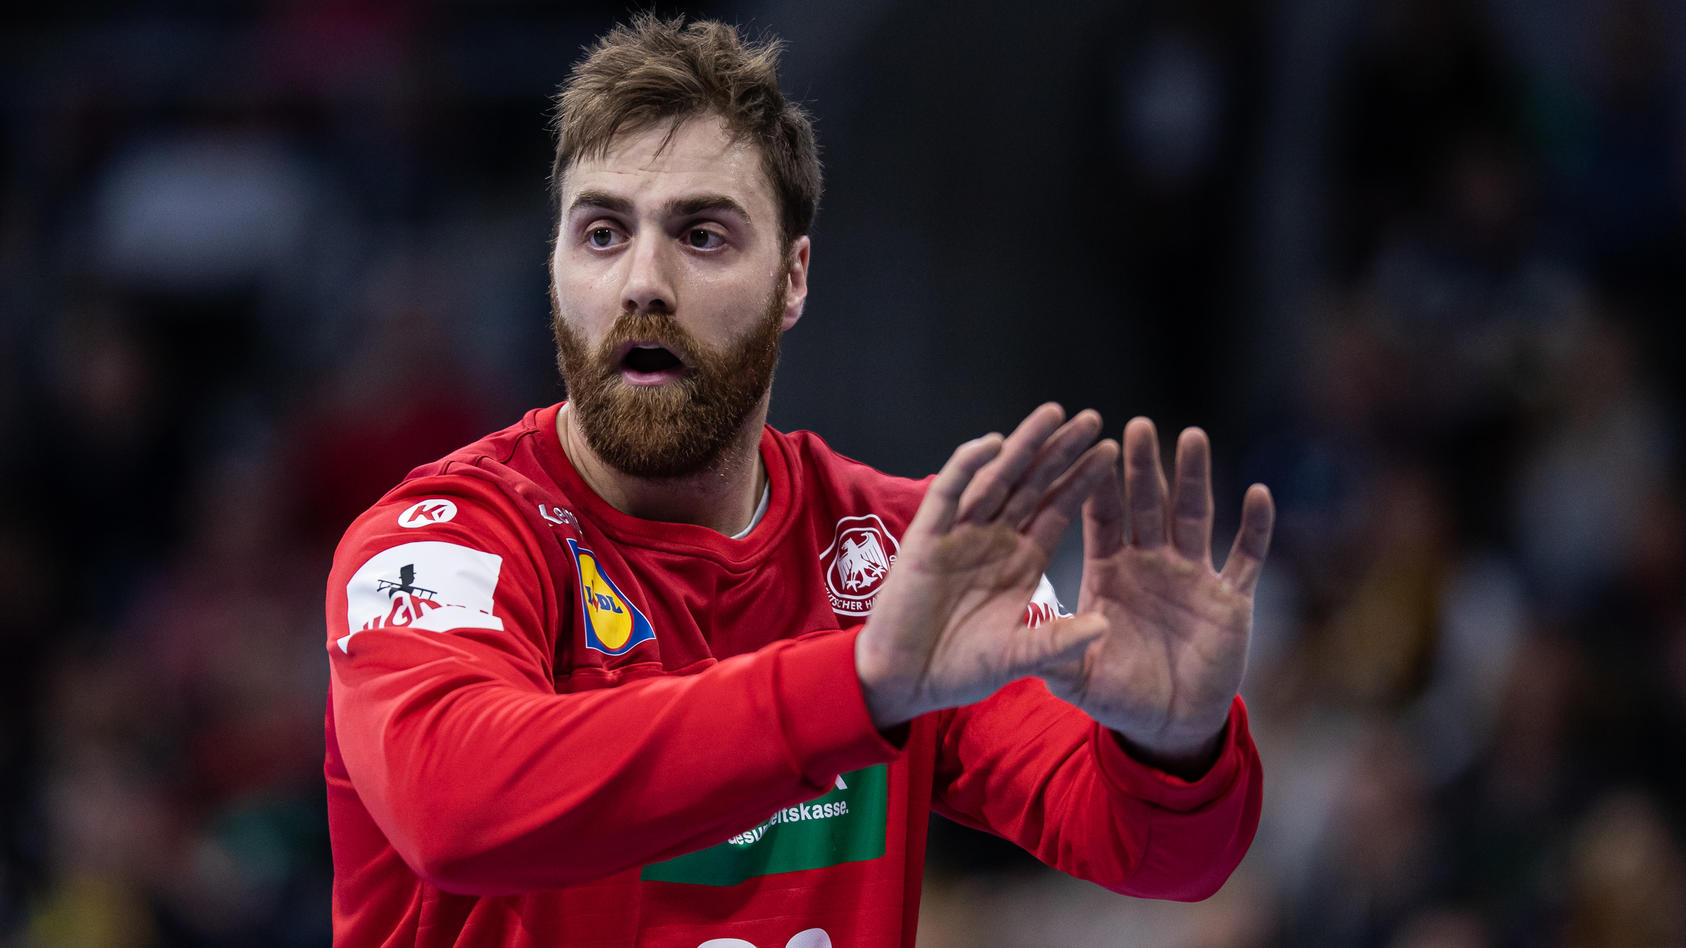 Germany v Iceland - International Handball Friendly